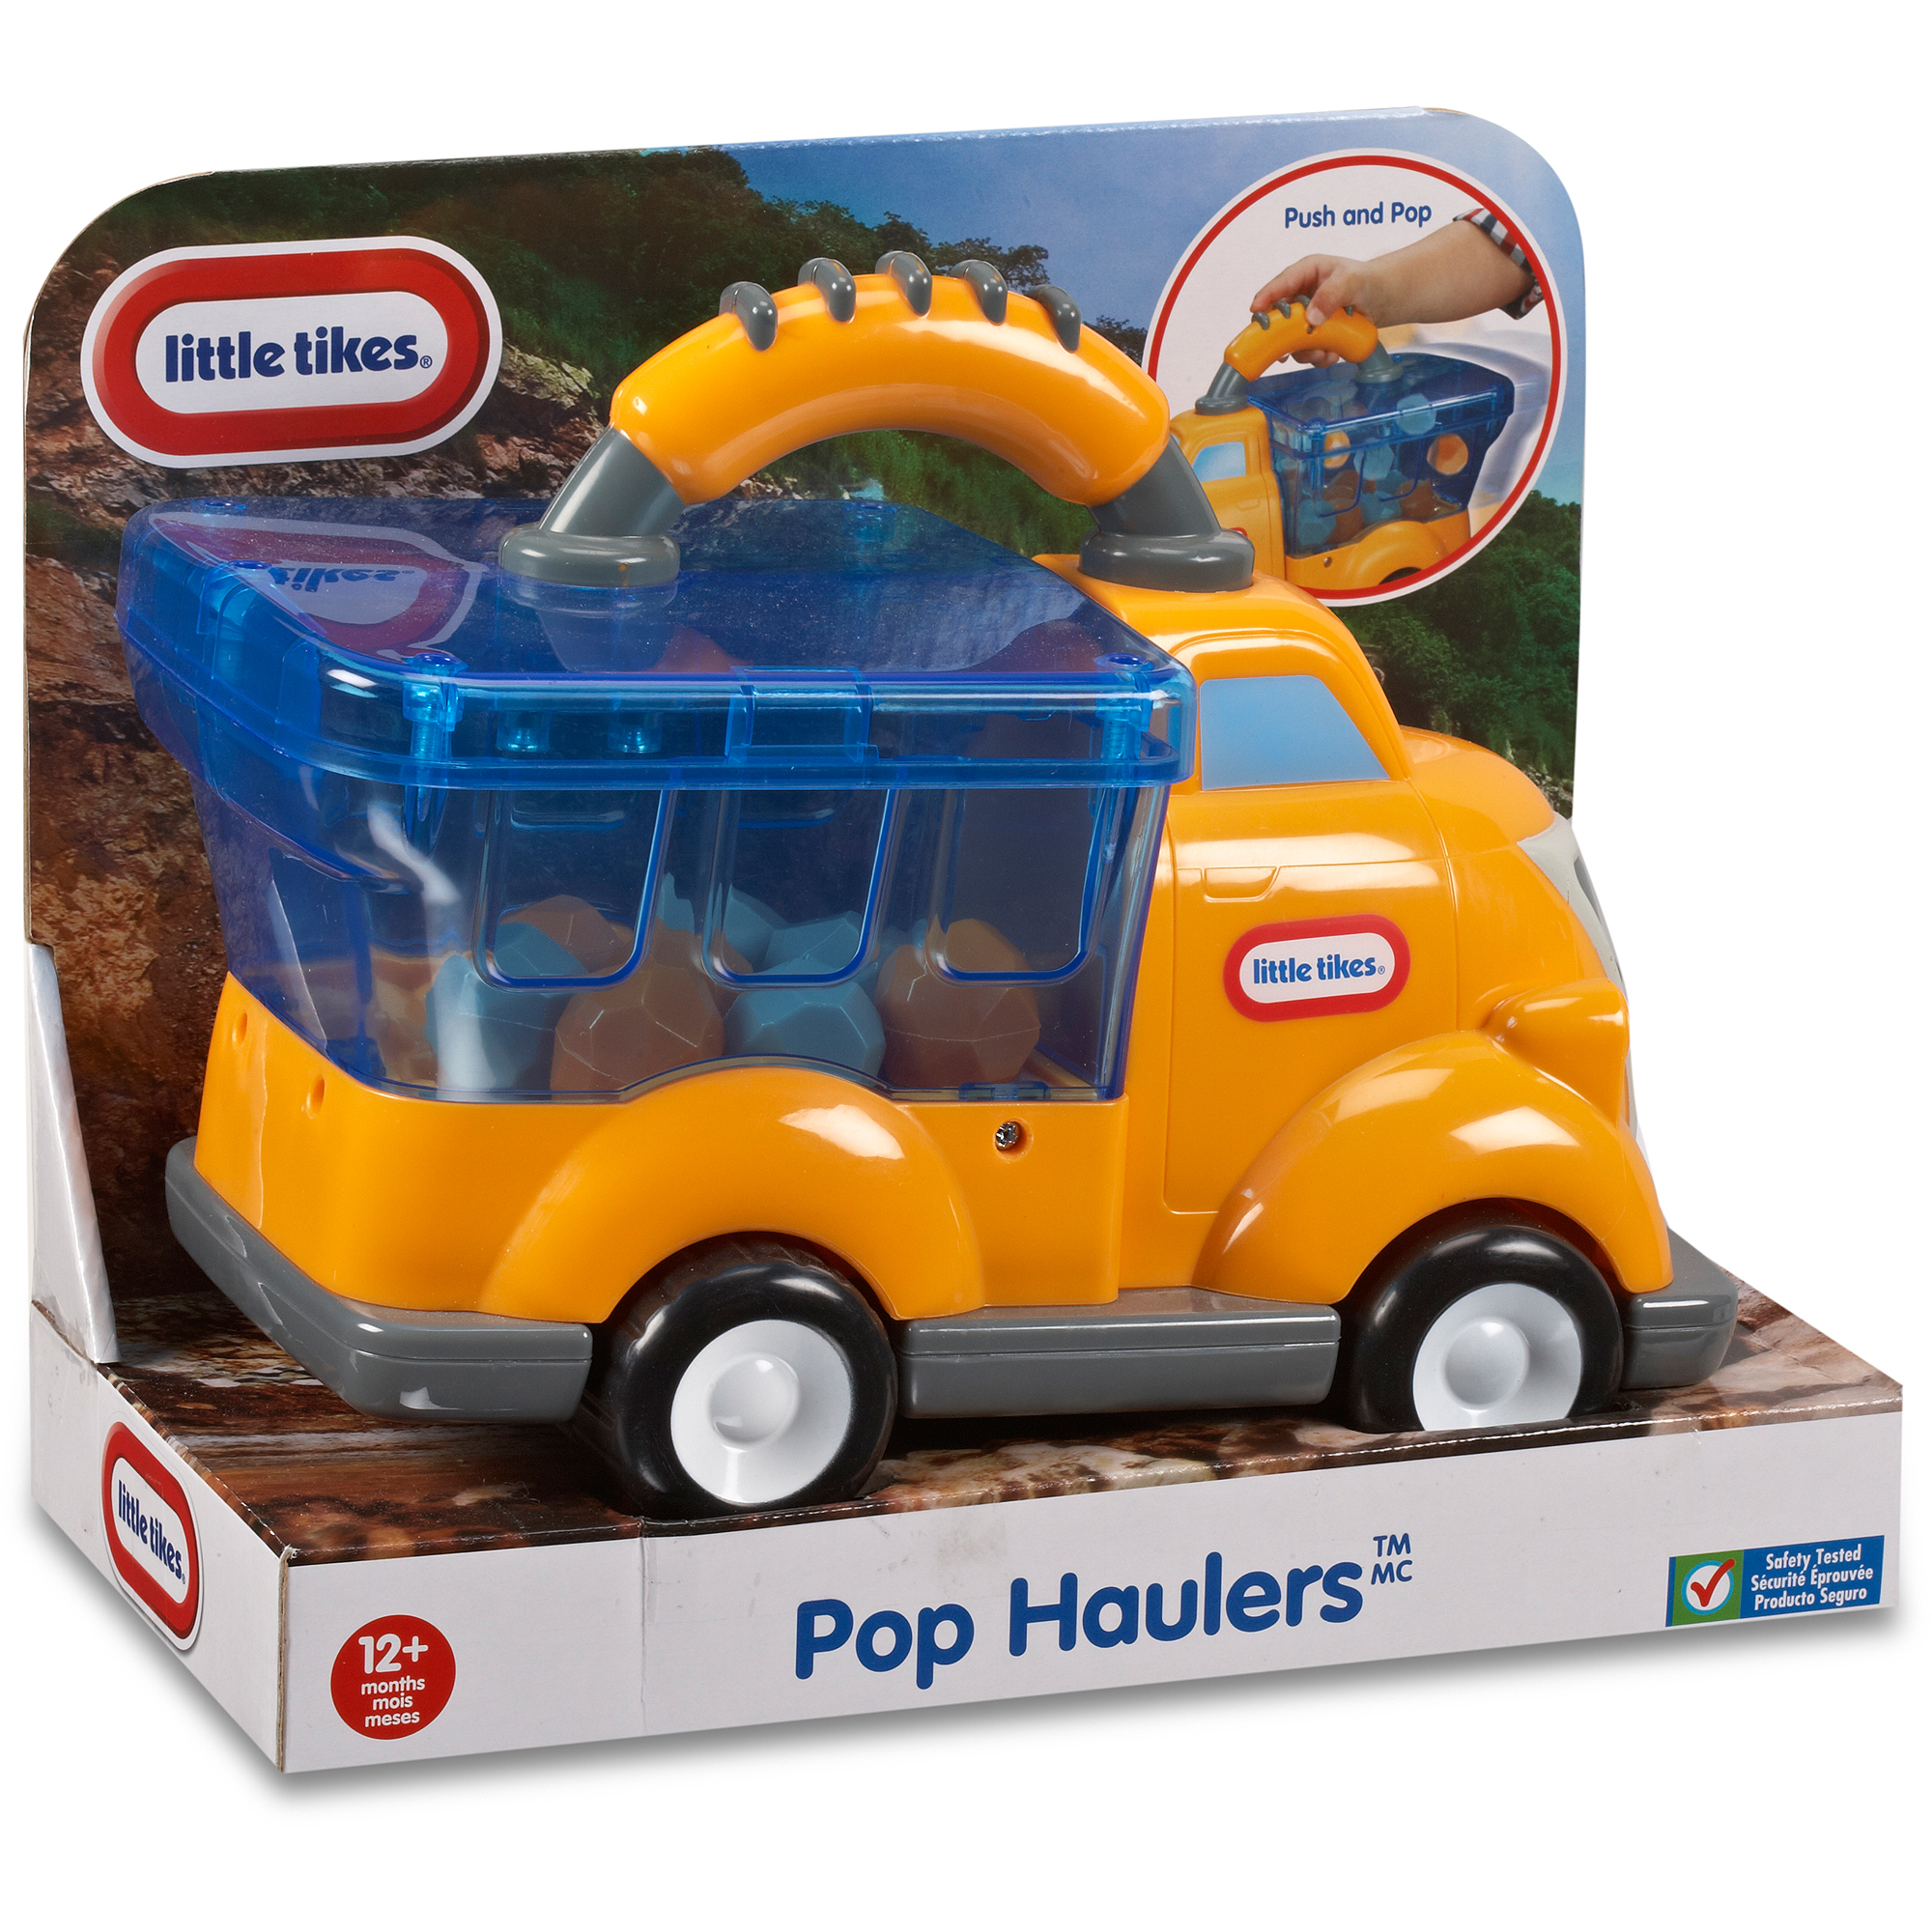 Little Tikes Handle Haulers Pop Haulers, Billy Boulder